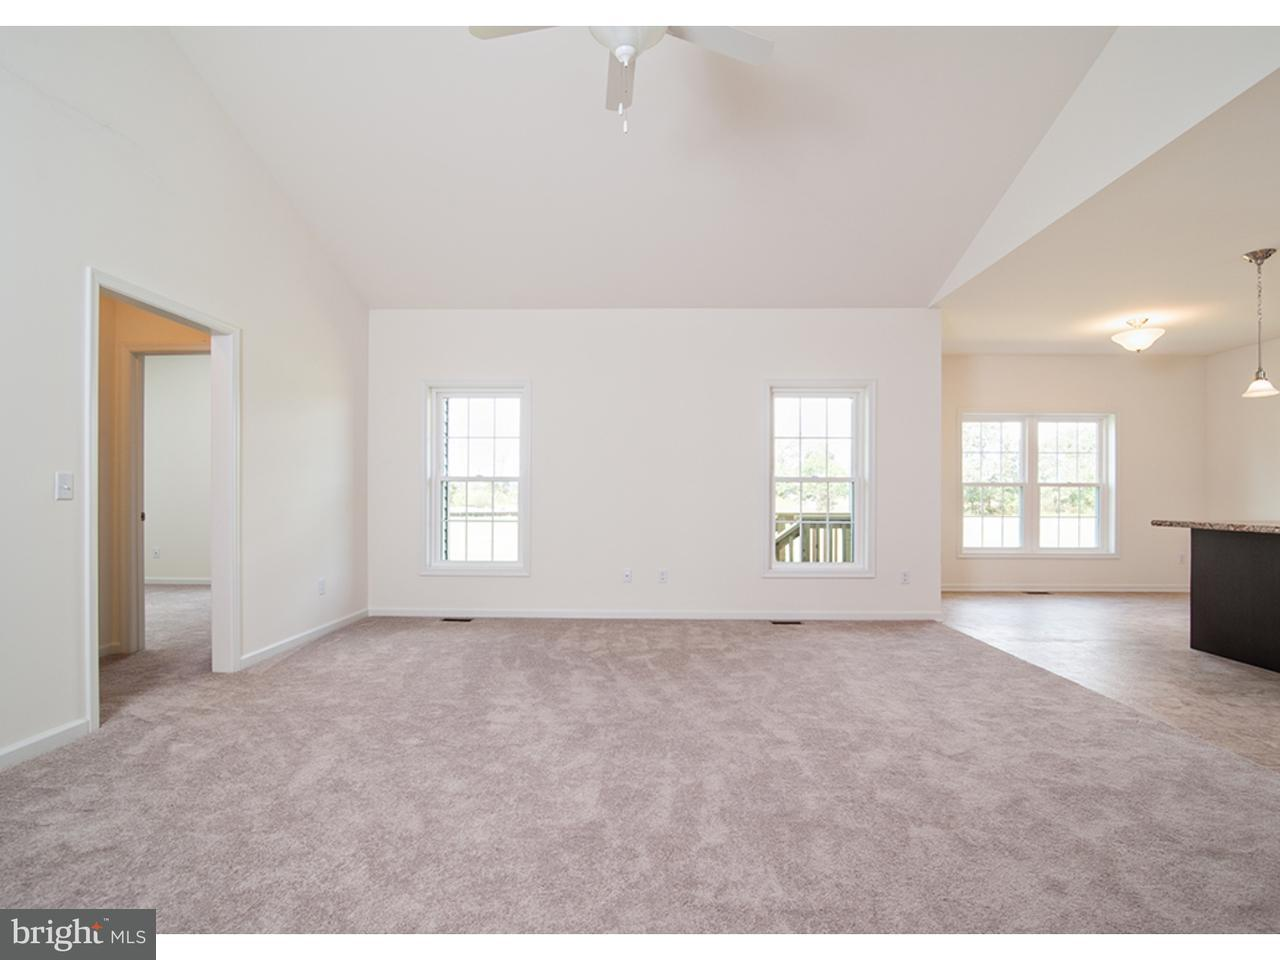 Additional photo for property listing at 102 JUNE LN #LOT181  Milford, Delaware 19963 United States